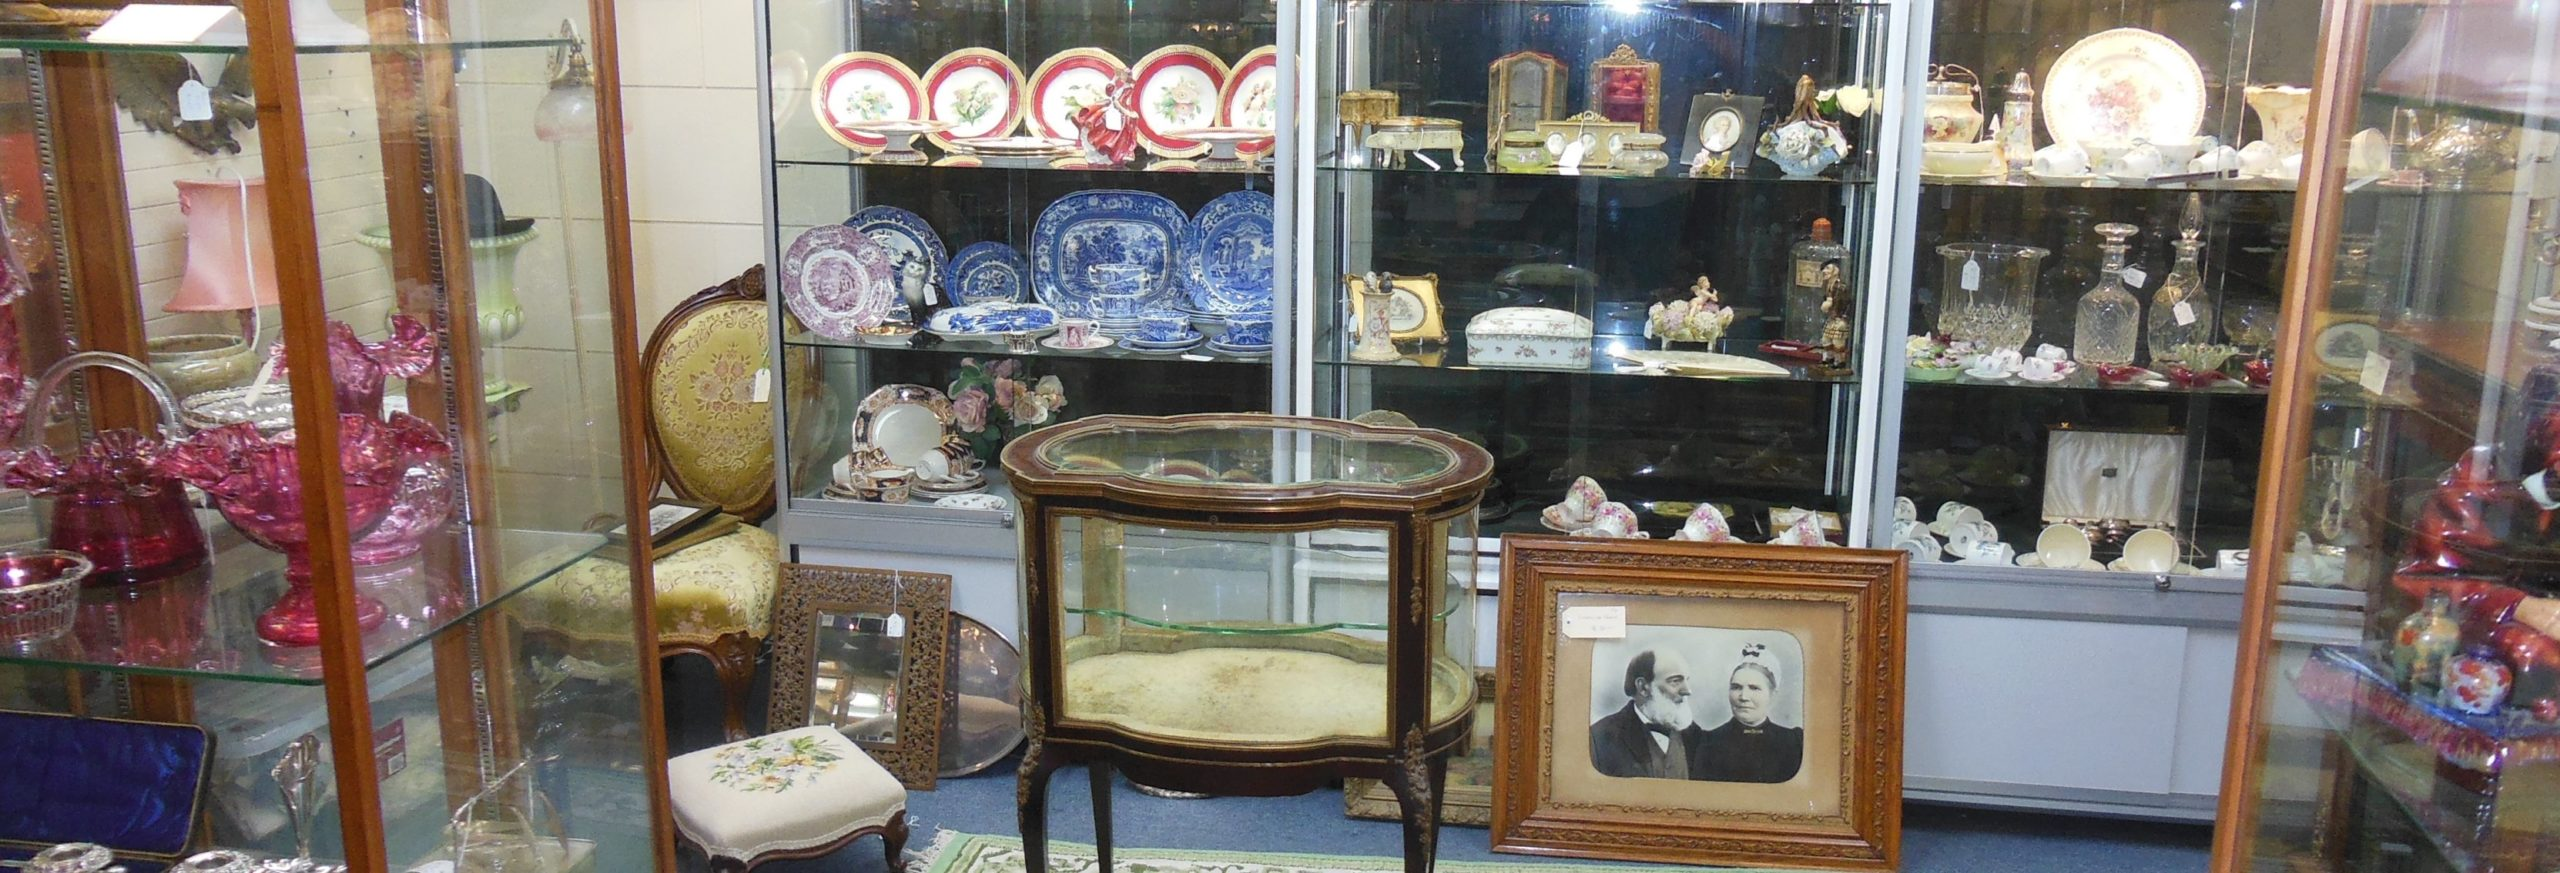 Camberwell-Antique-Centre-Ceramics-China-Furniture-scaled